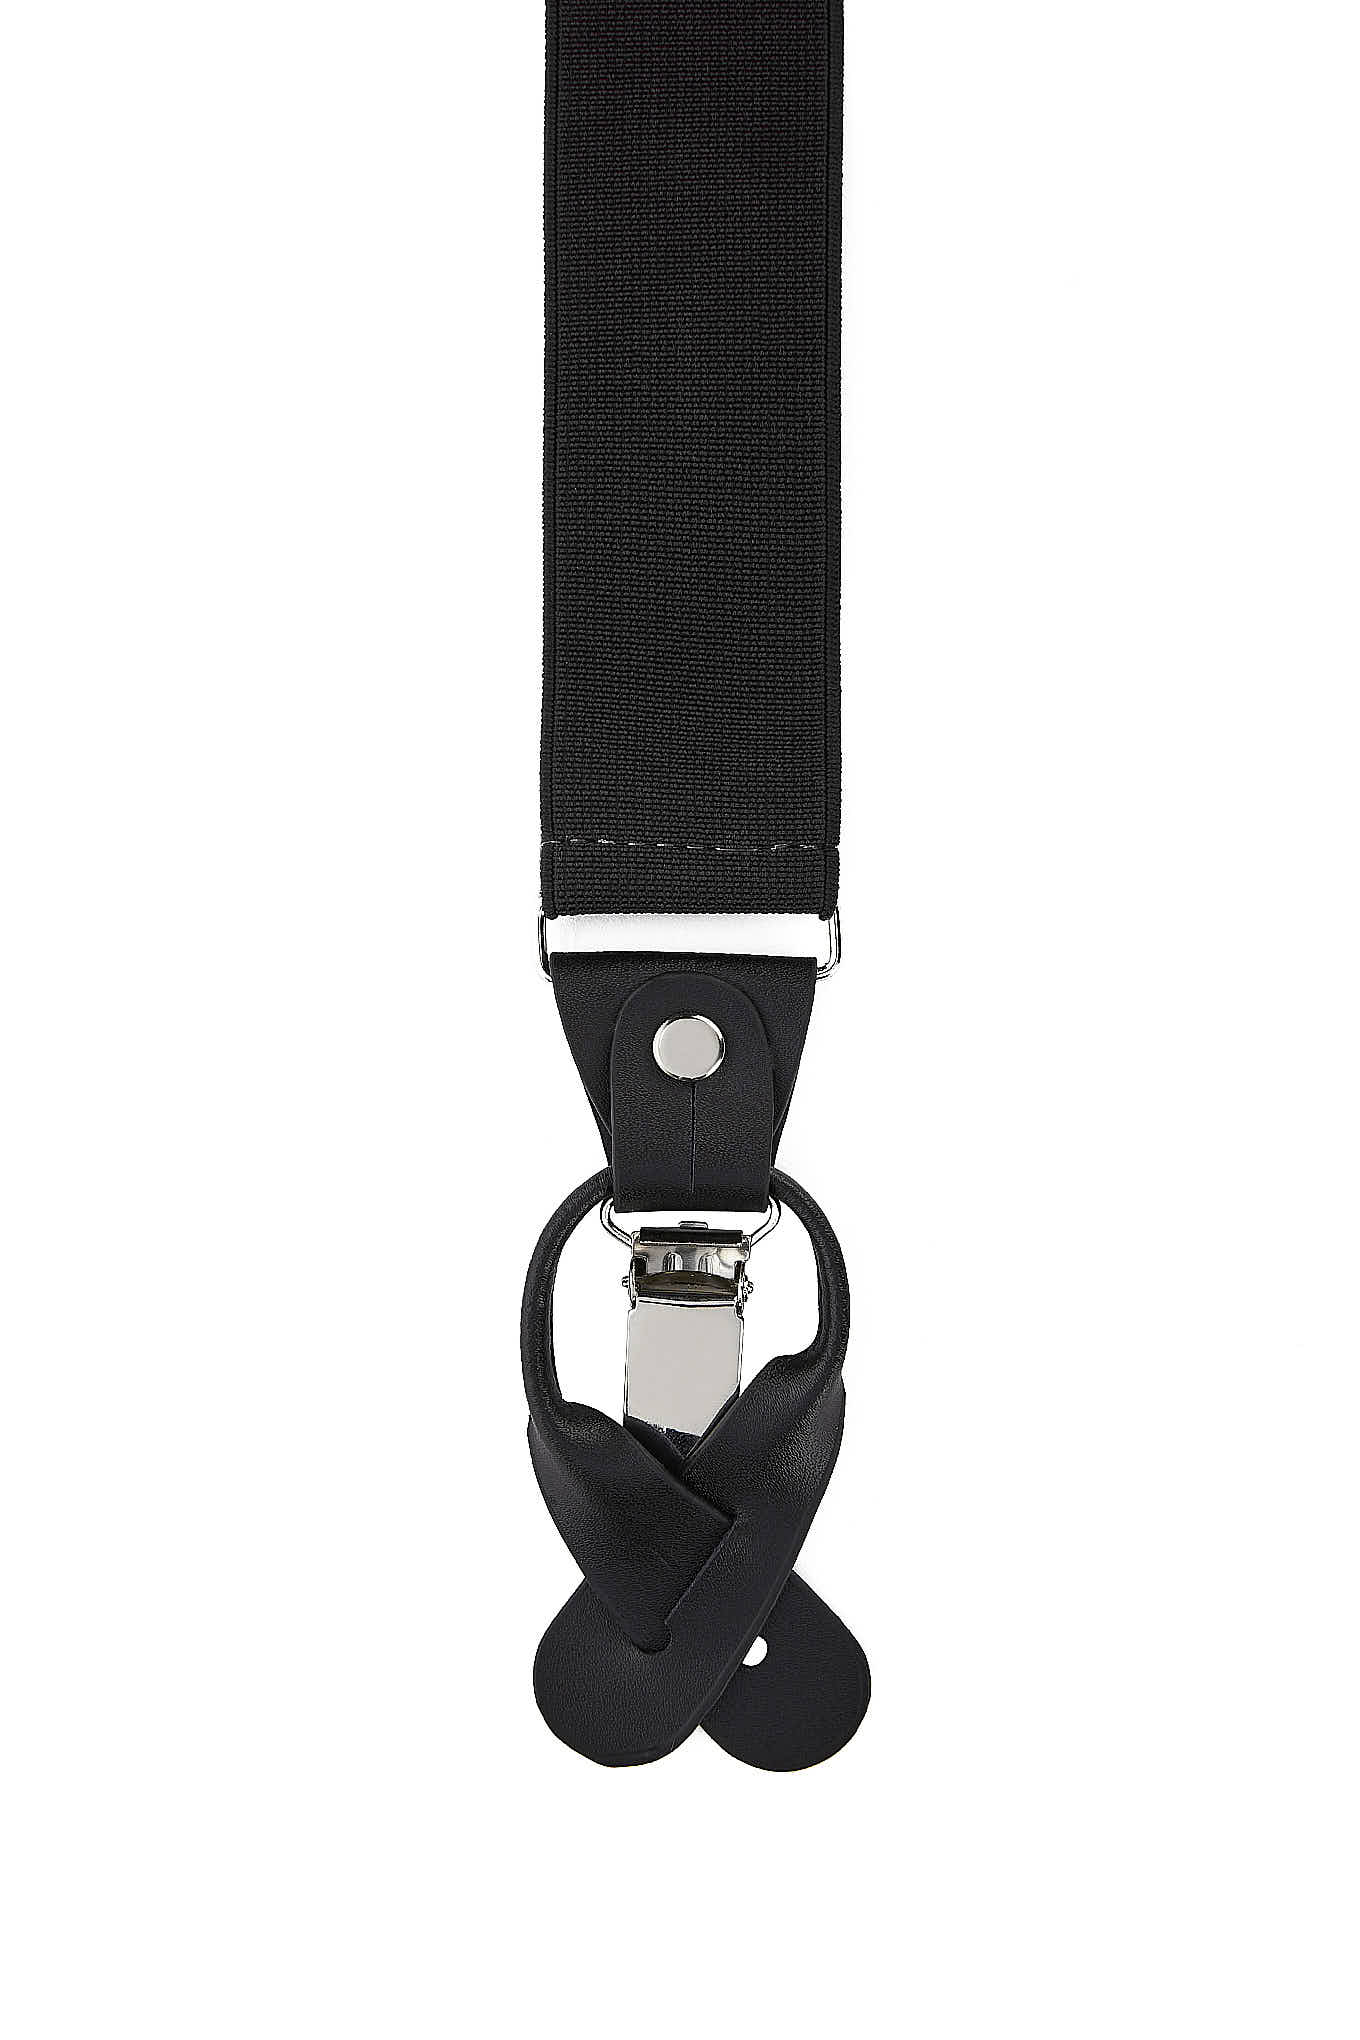 Suspenders Black Casual Man